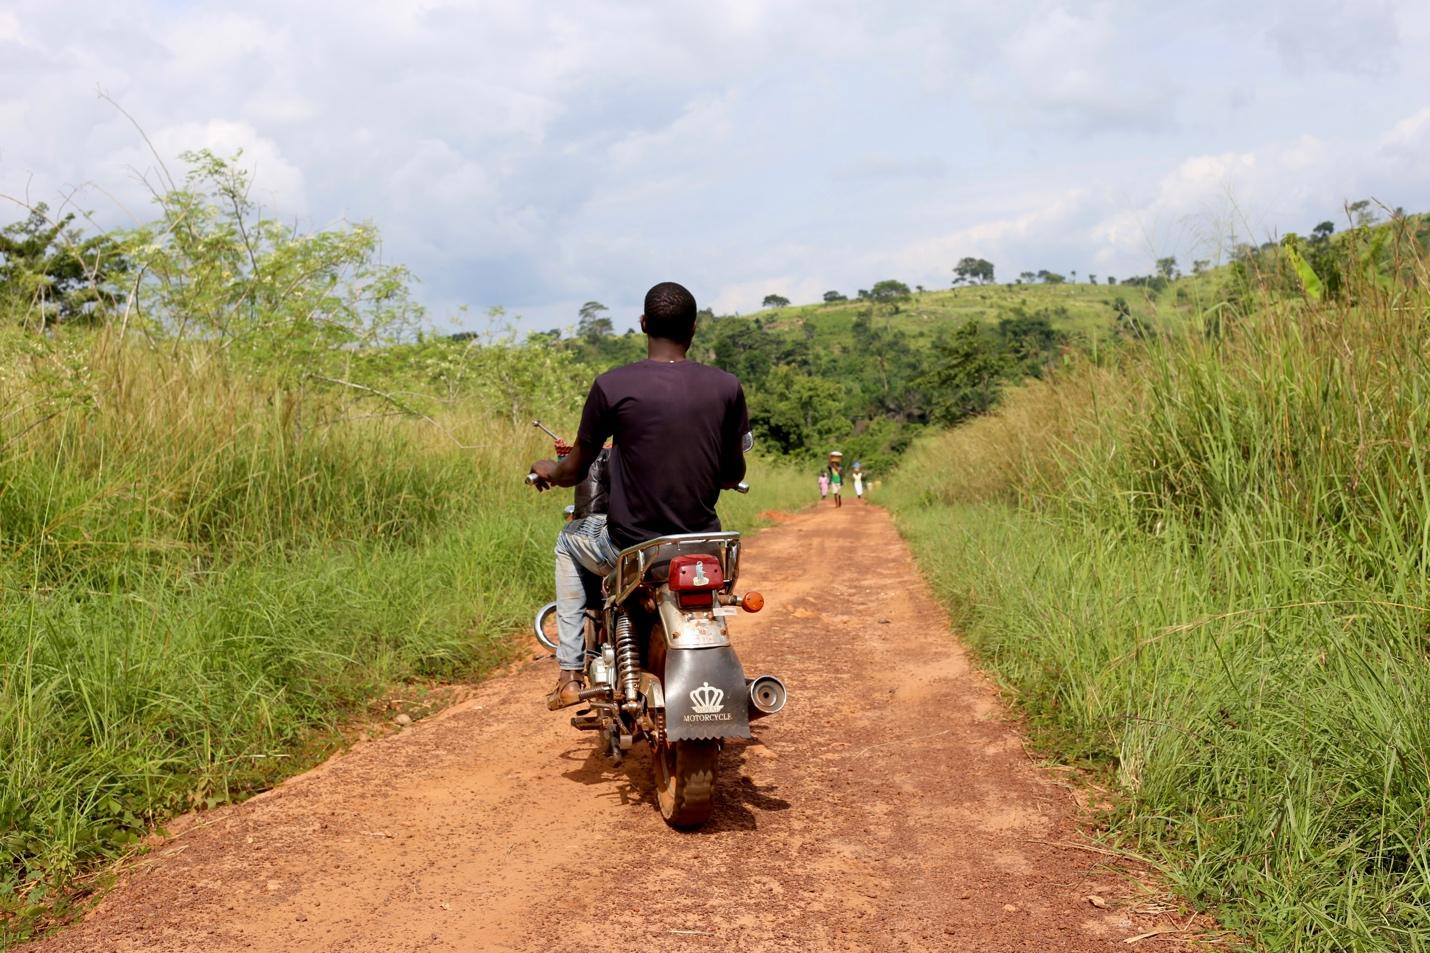 Earnest is a young field agent based in Upper Manya Krobo District. He explained that he wants to be someone in the moringa field, and feels as though working with MoringaConnect will provide him opportunities for growth.